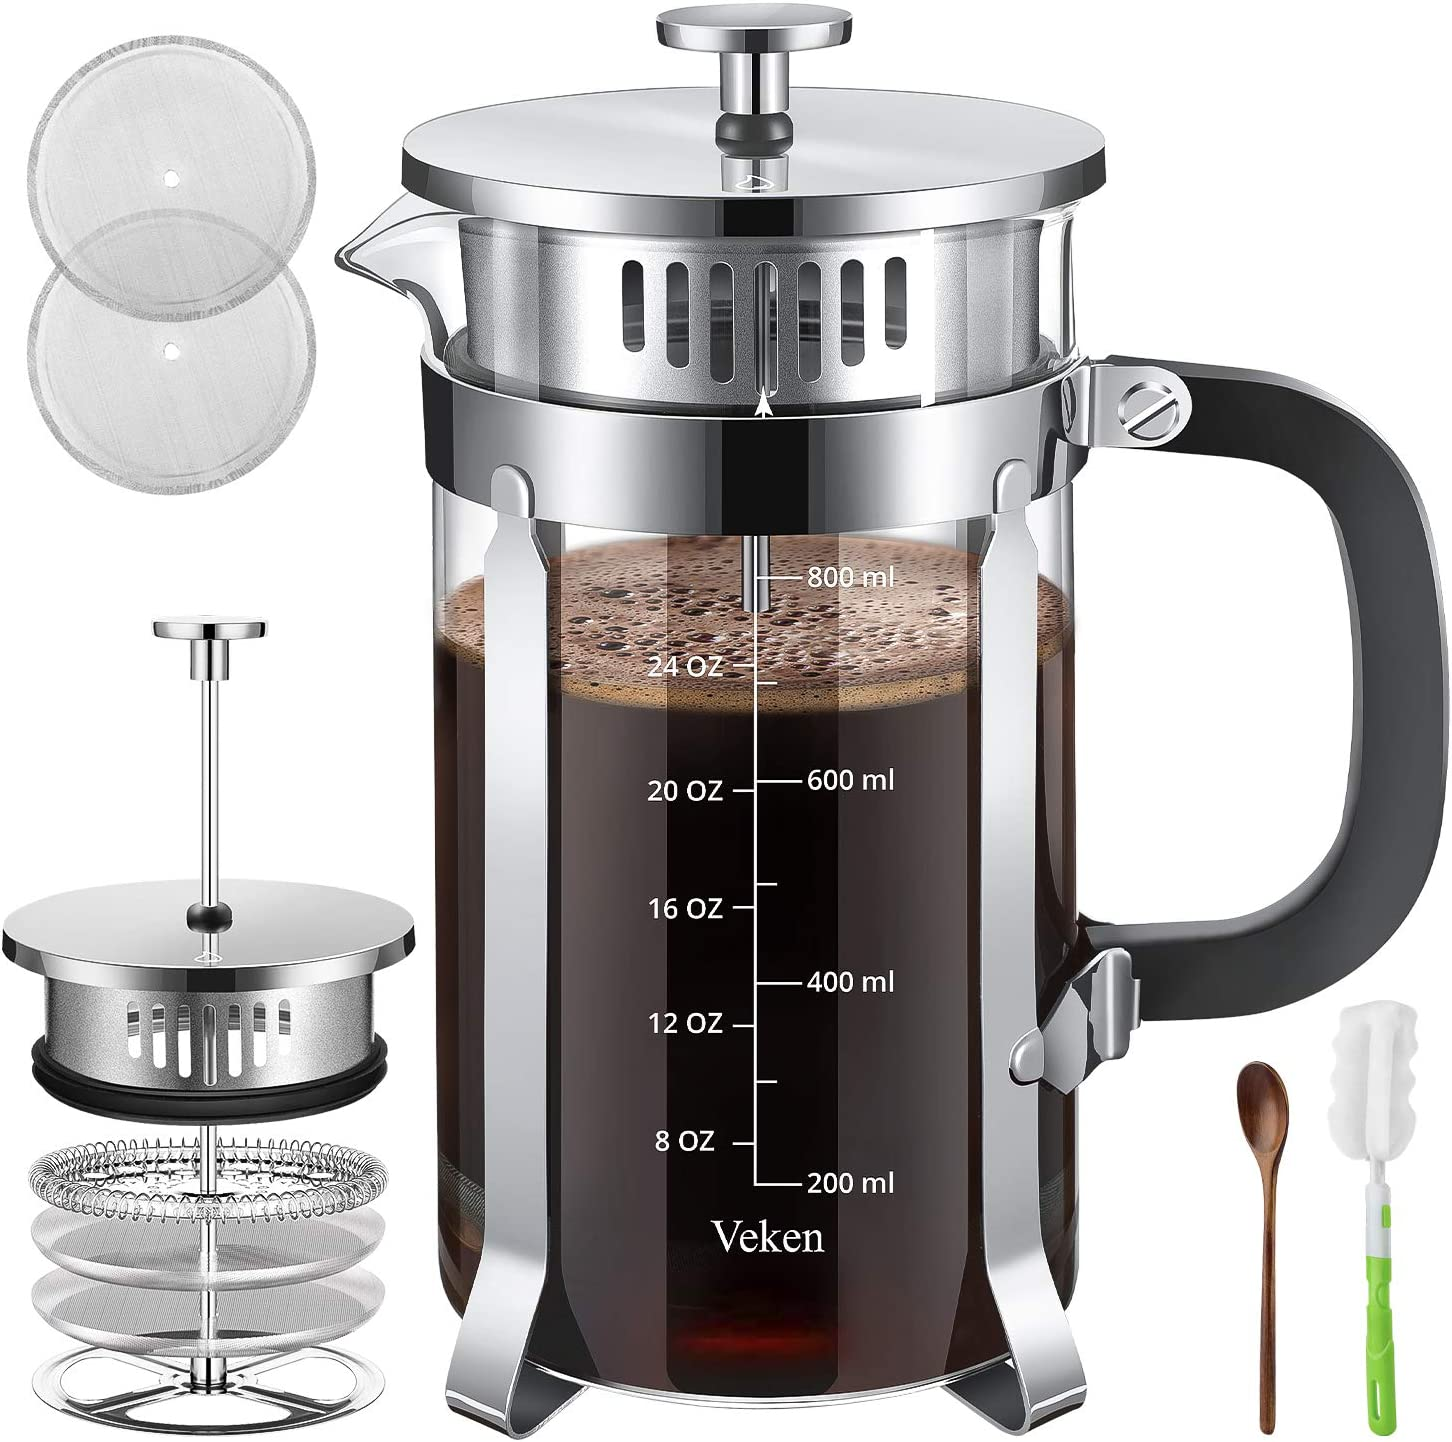 Veken French Press Coffer Tea Maker 34 oz , 304 Stainless Steel Coffee Press with 4 Level Filtration System, Thickened Heat Resistant Borosilicate Glass, Silver